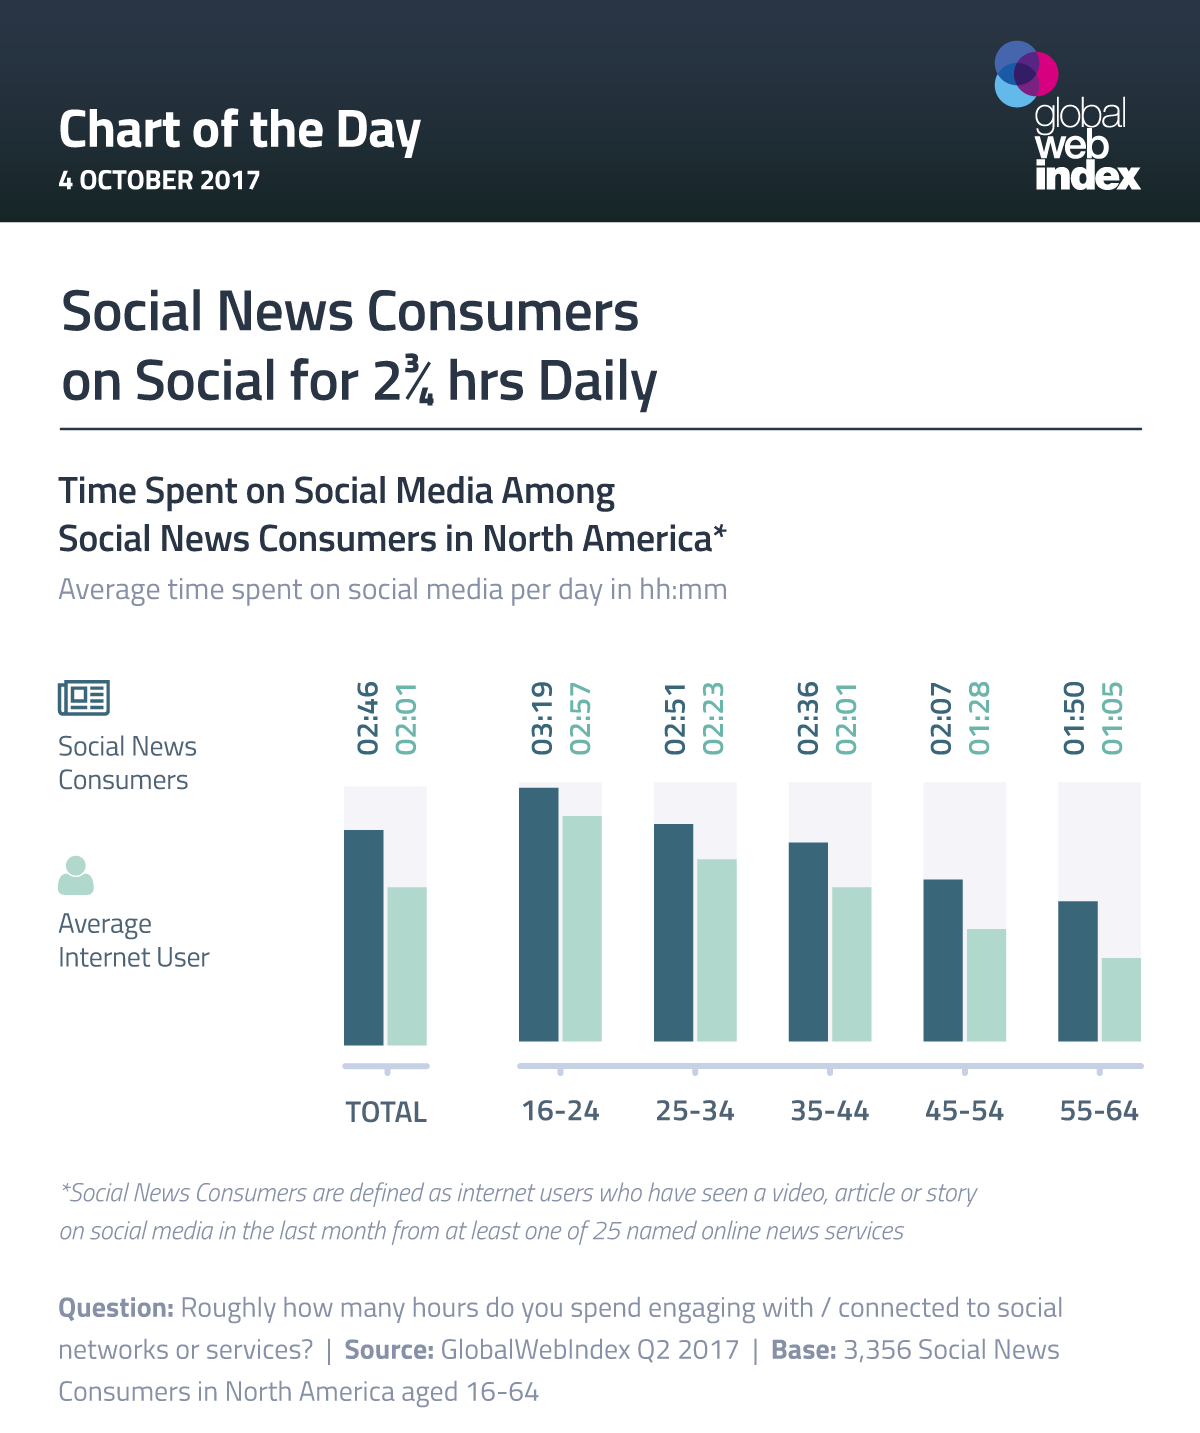 Social News Consumers on Social for 2¾ hrs Daily